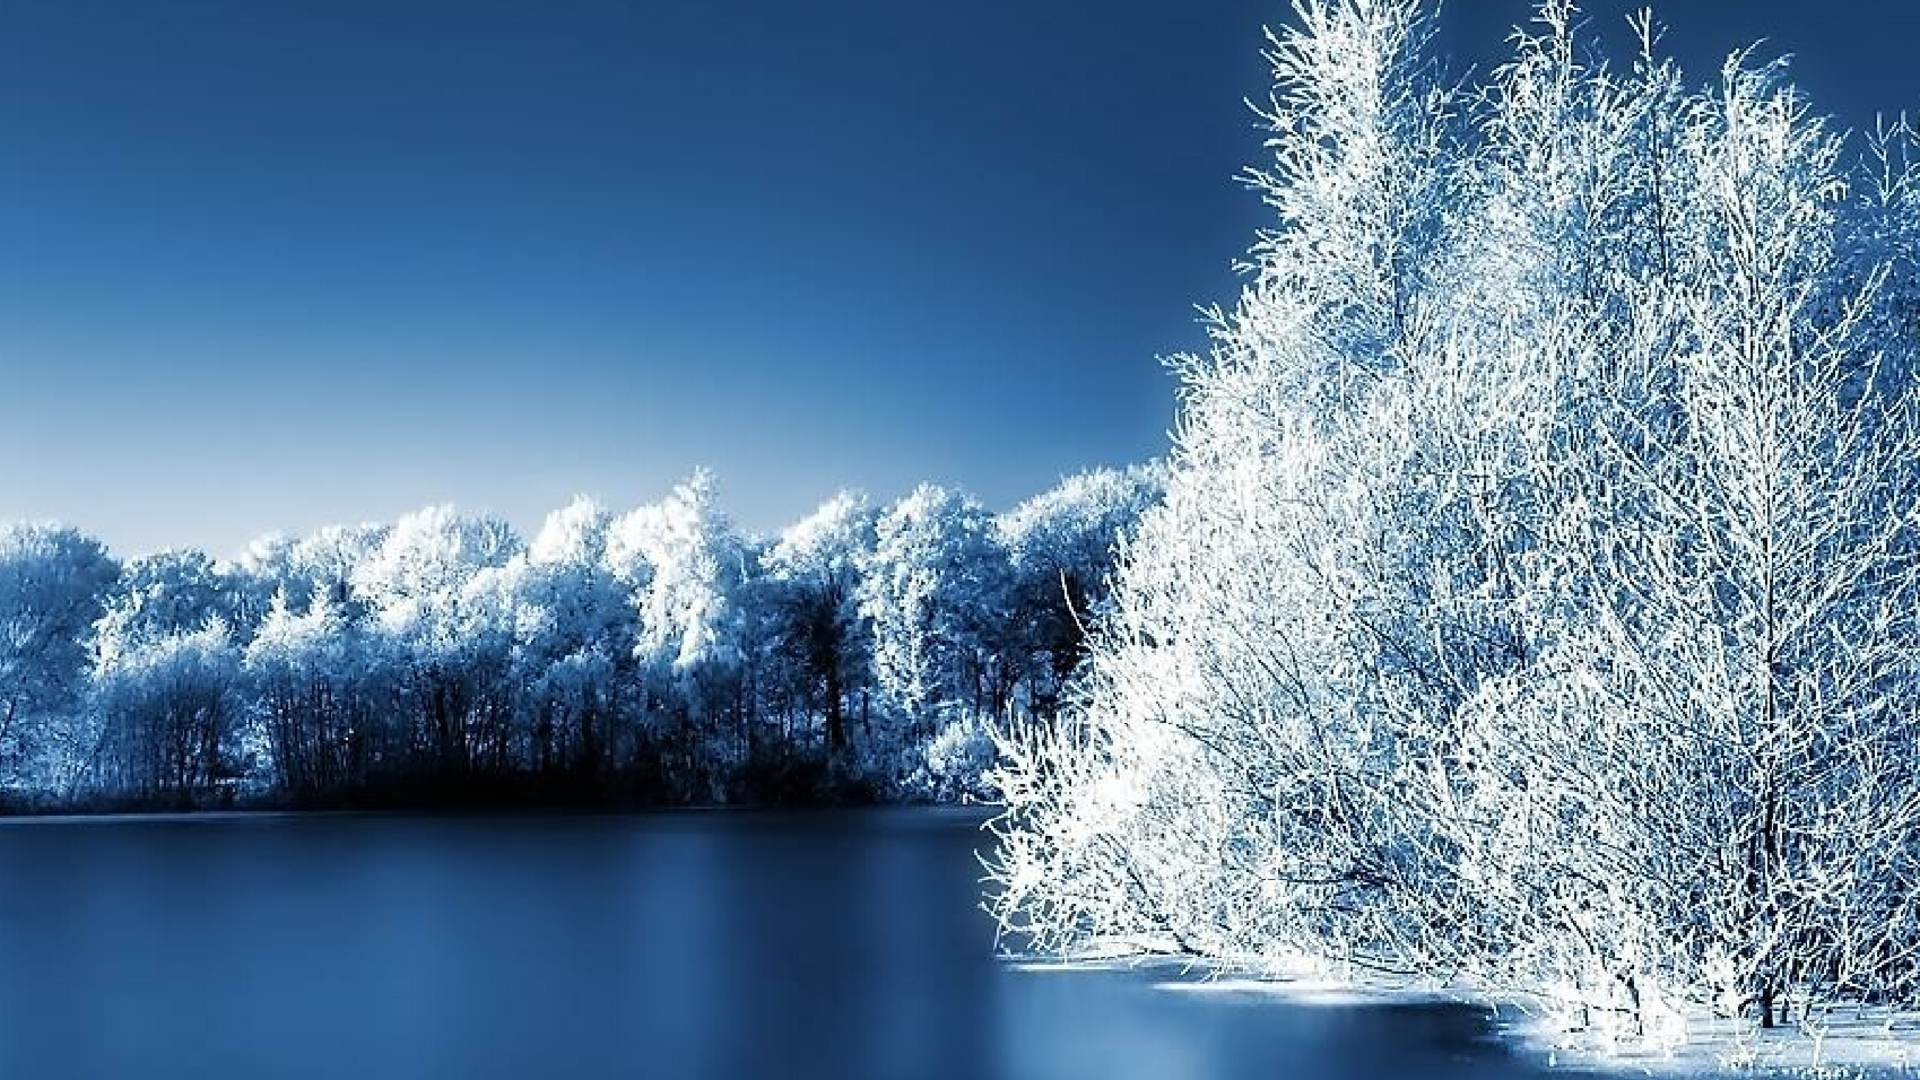 High Definition Wallpapers High: Winter Scenery High Definition Wallpapers